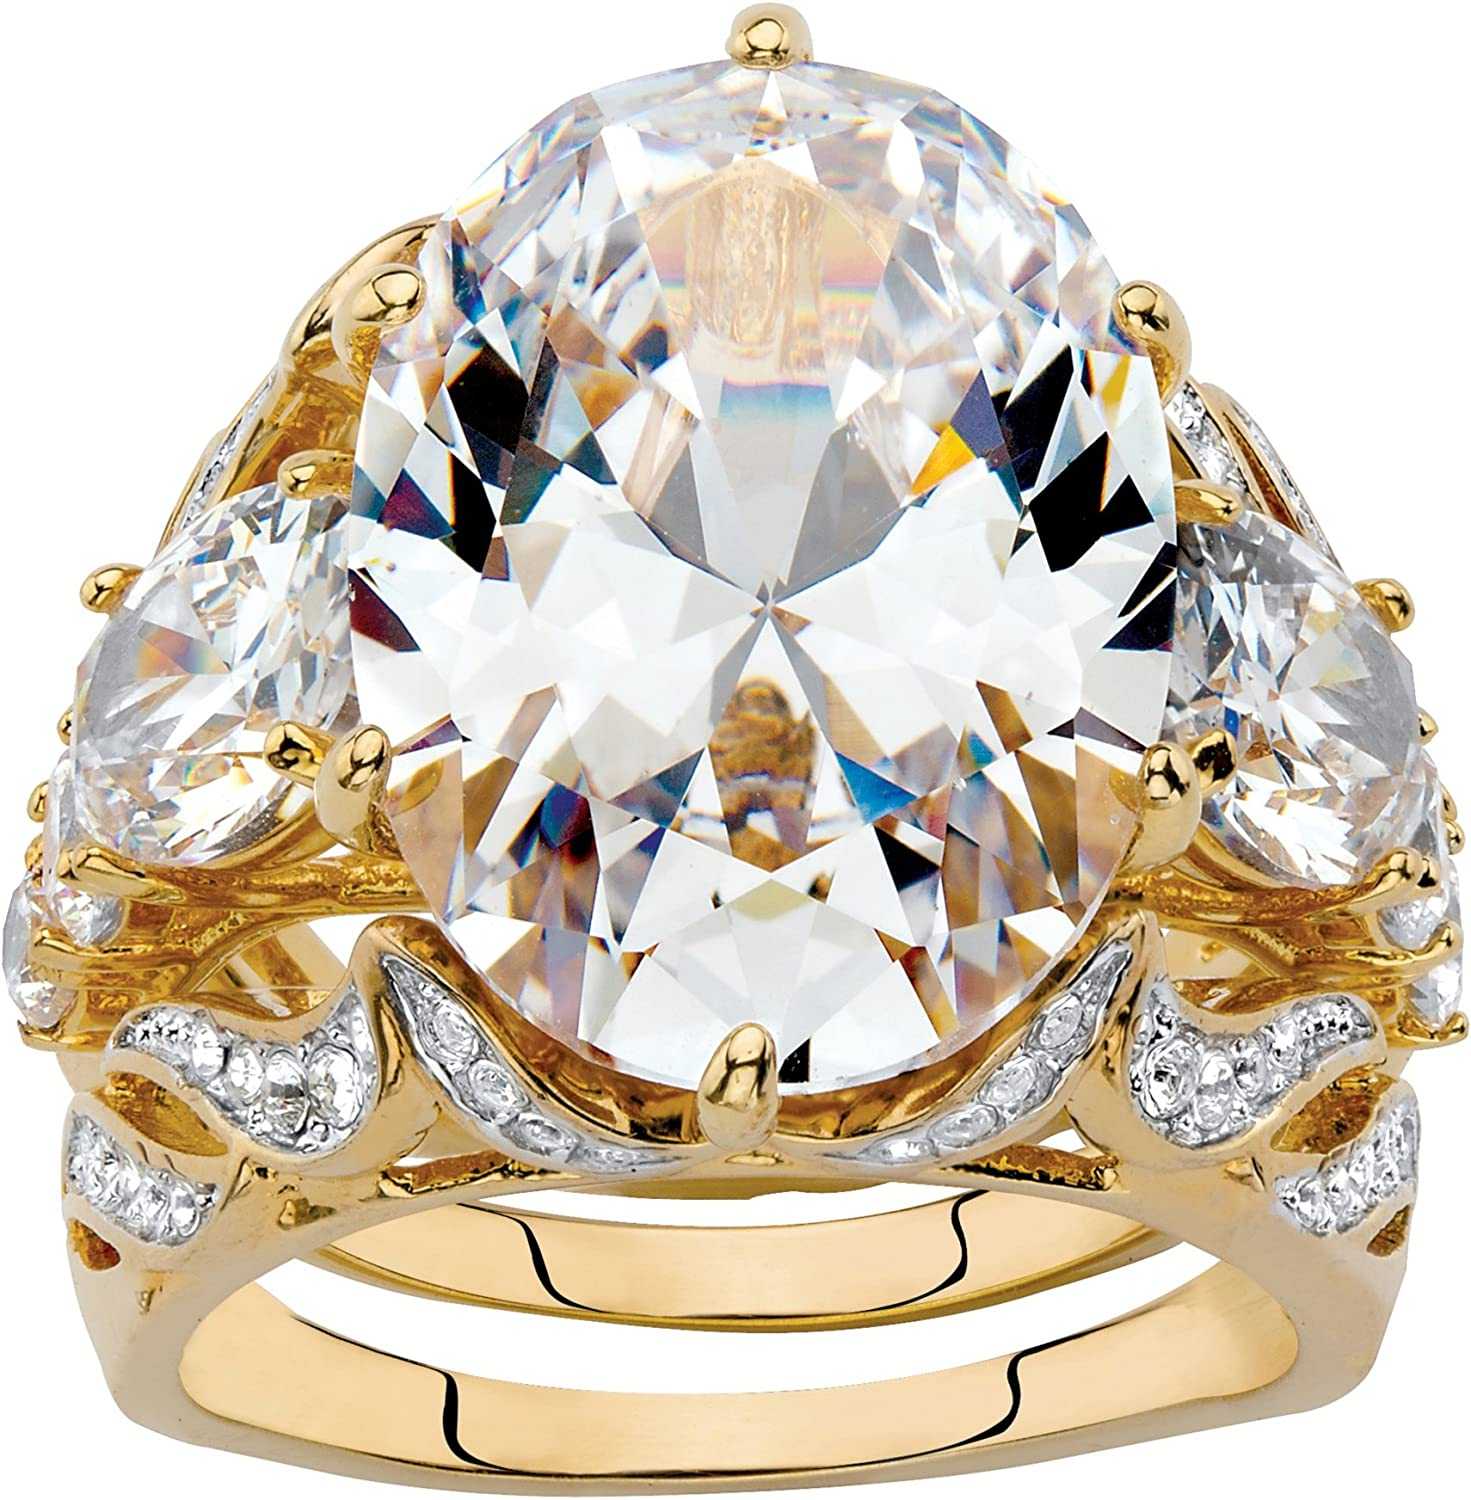 Palm Beach Jewelry Yellow Gold-Plated or Platinum-Plated Oval Cut Cubic Zirconia Bridal Ring Set